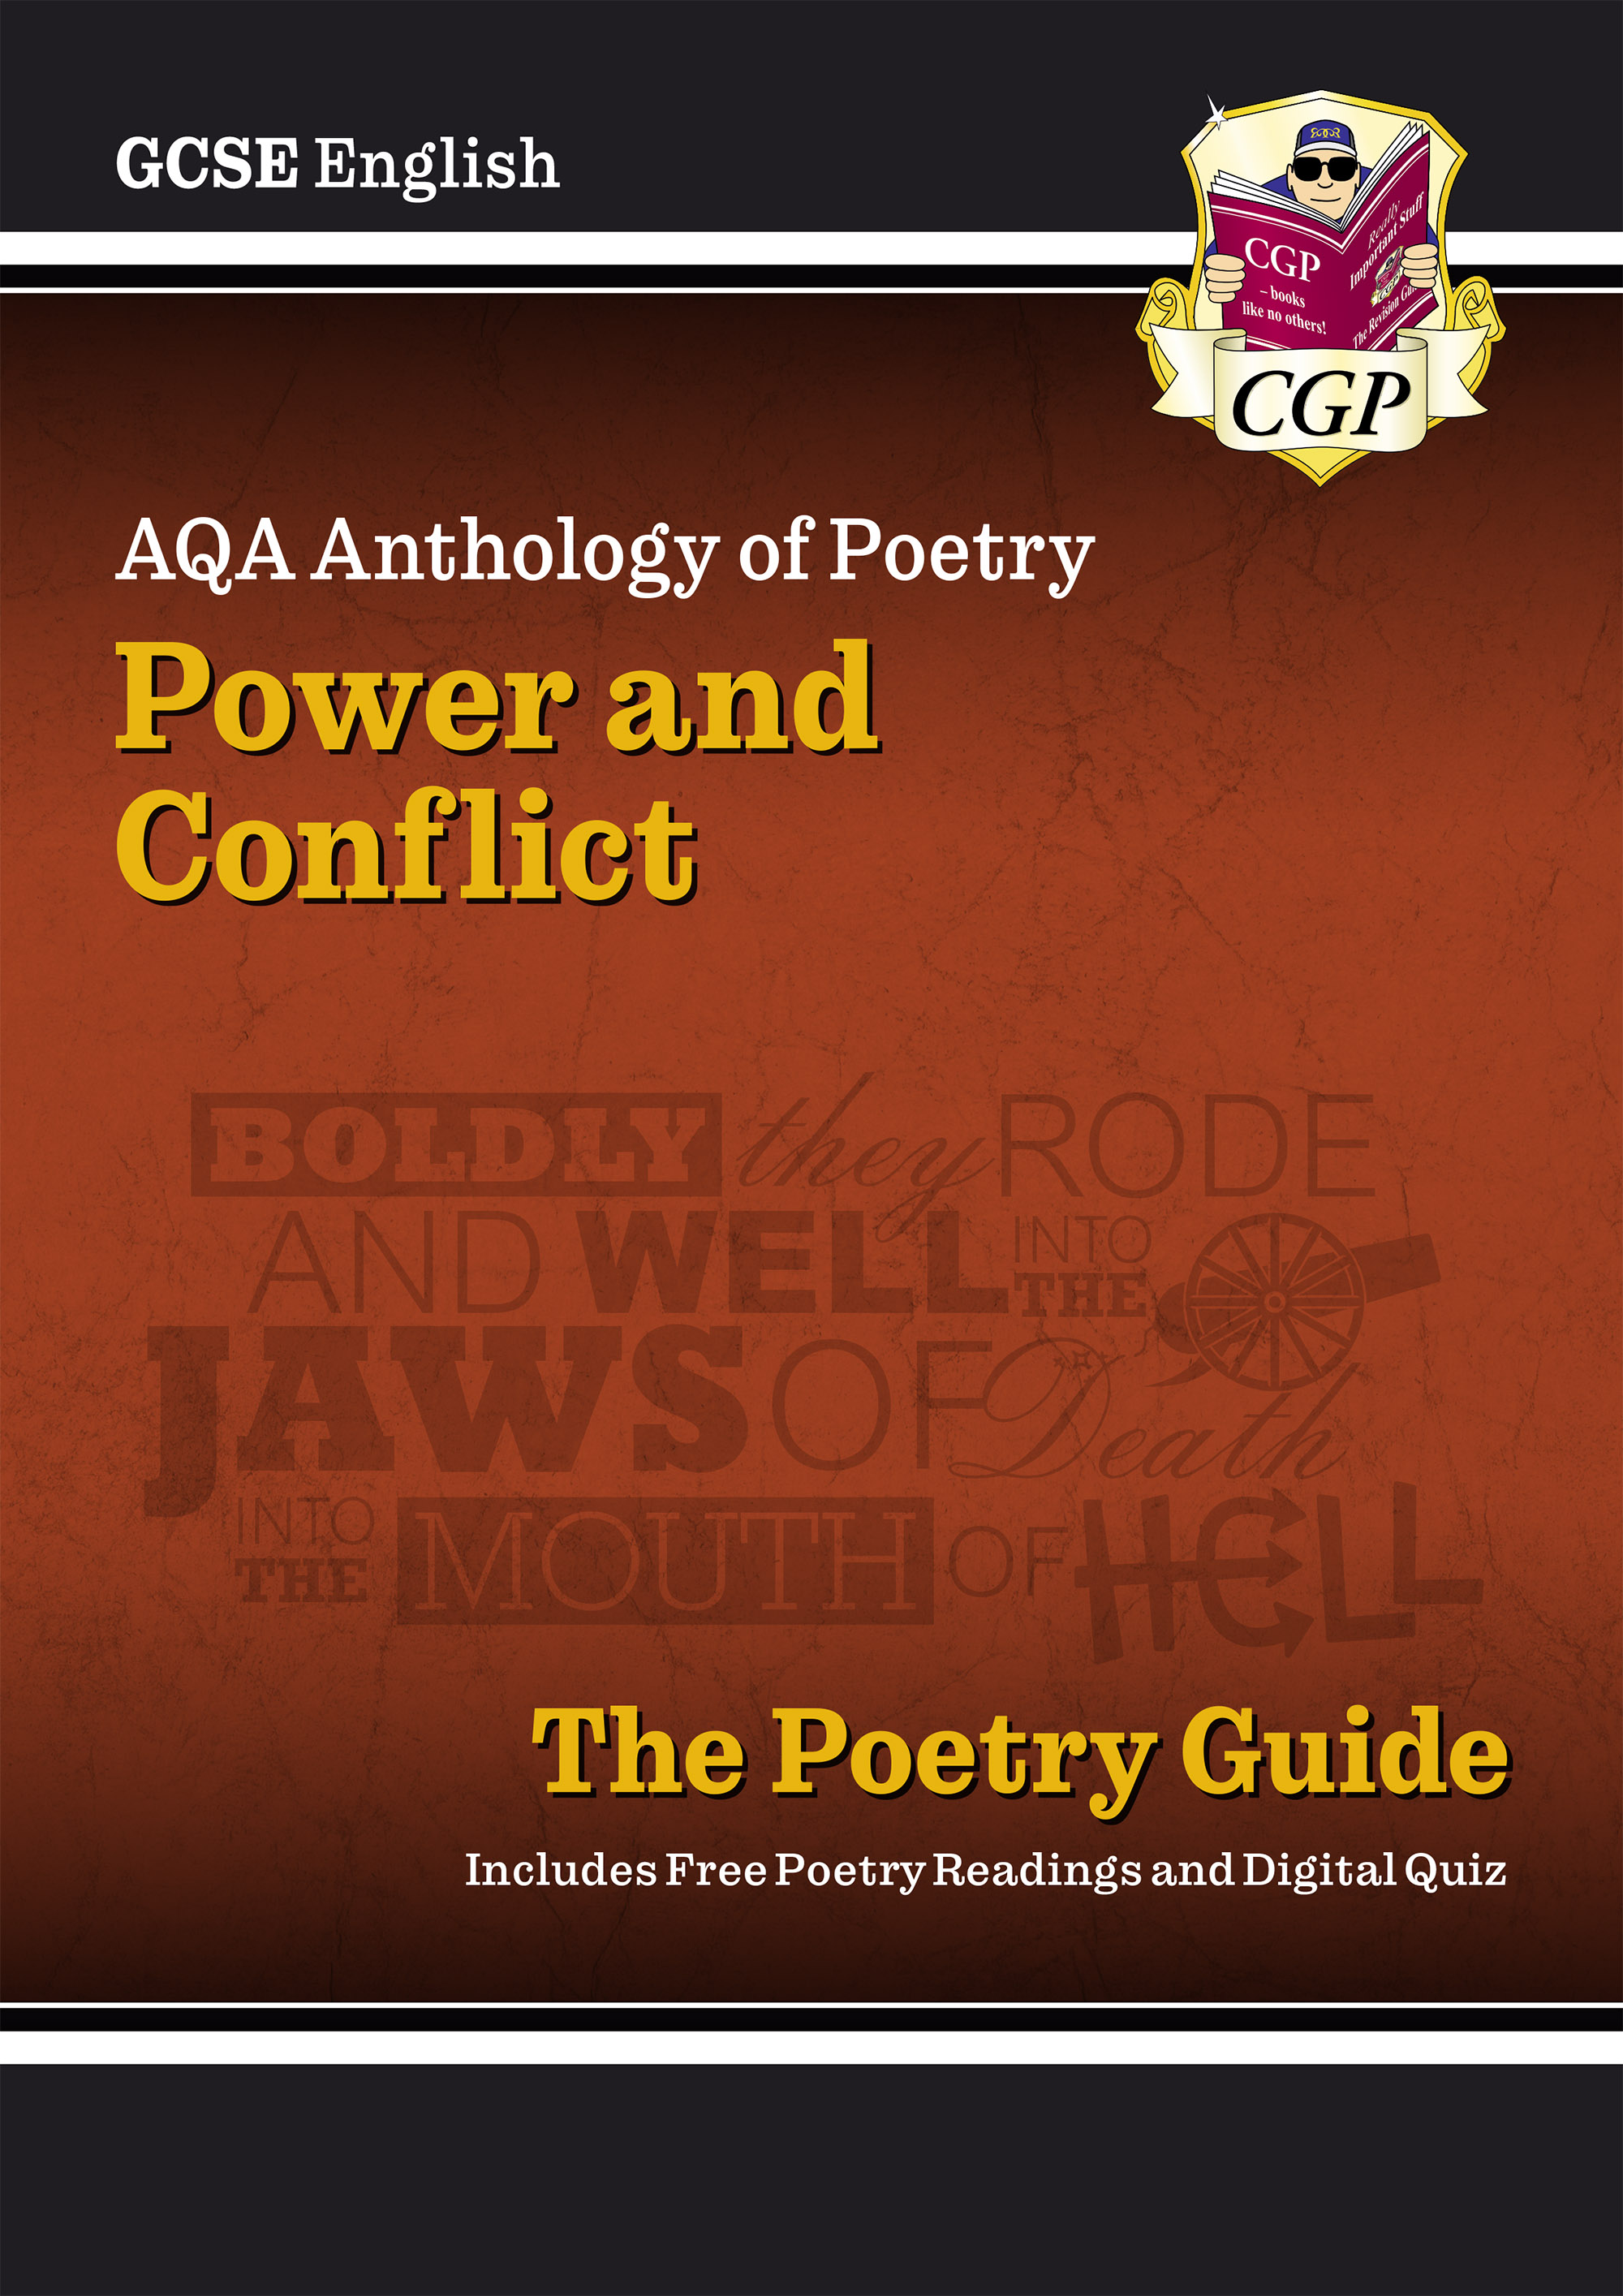 ACHR44D - New GCSE English AQA Poetry Guide - Power & Conflict Anthology Online Edition, Audio & Qui